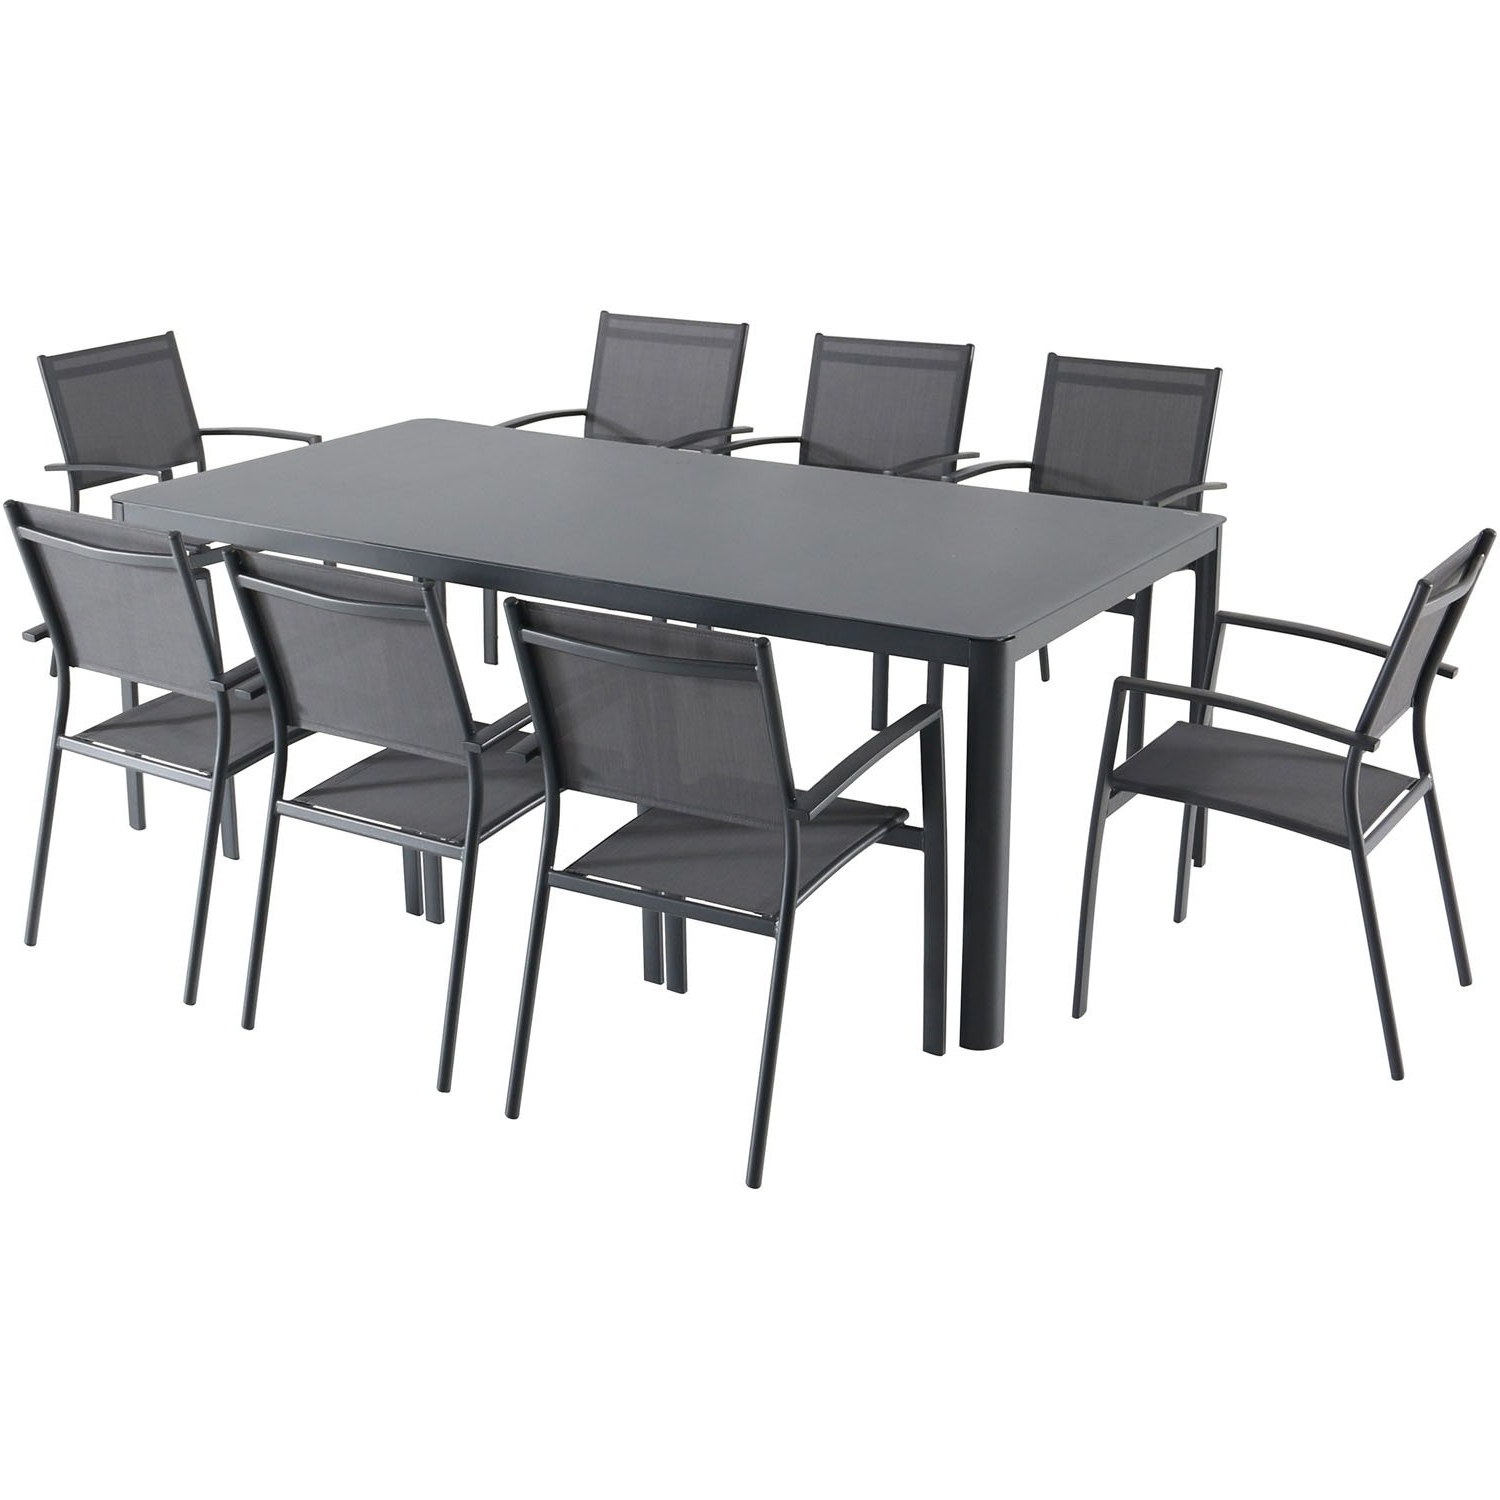 Shop Hanover Fresno 9 Piece Outdoor Dining Set With 8 Sling Arm Within Widely Used Grady 5 Piece Round Dining Sets (View 21 of 25)